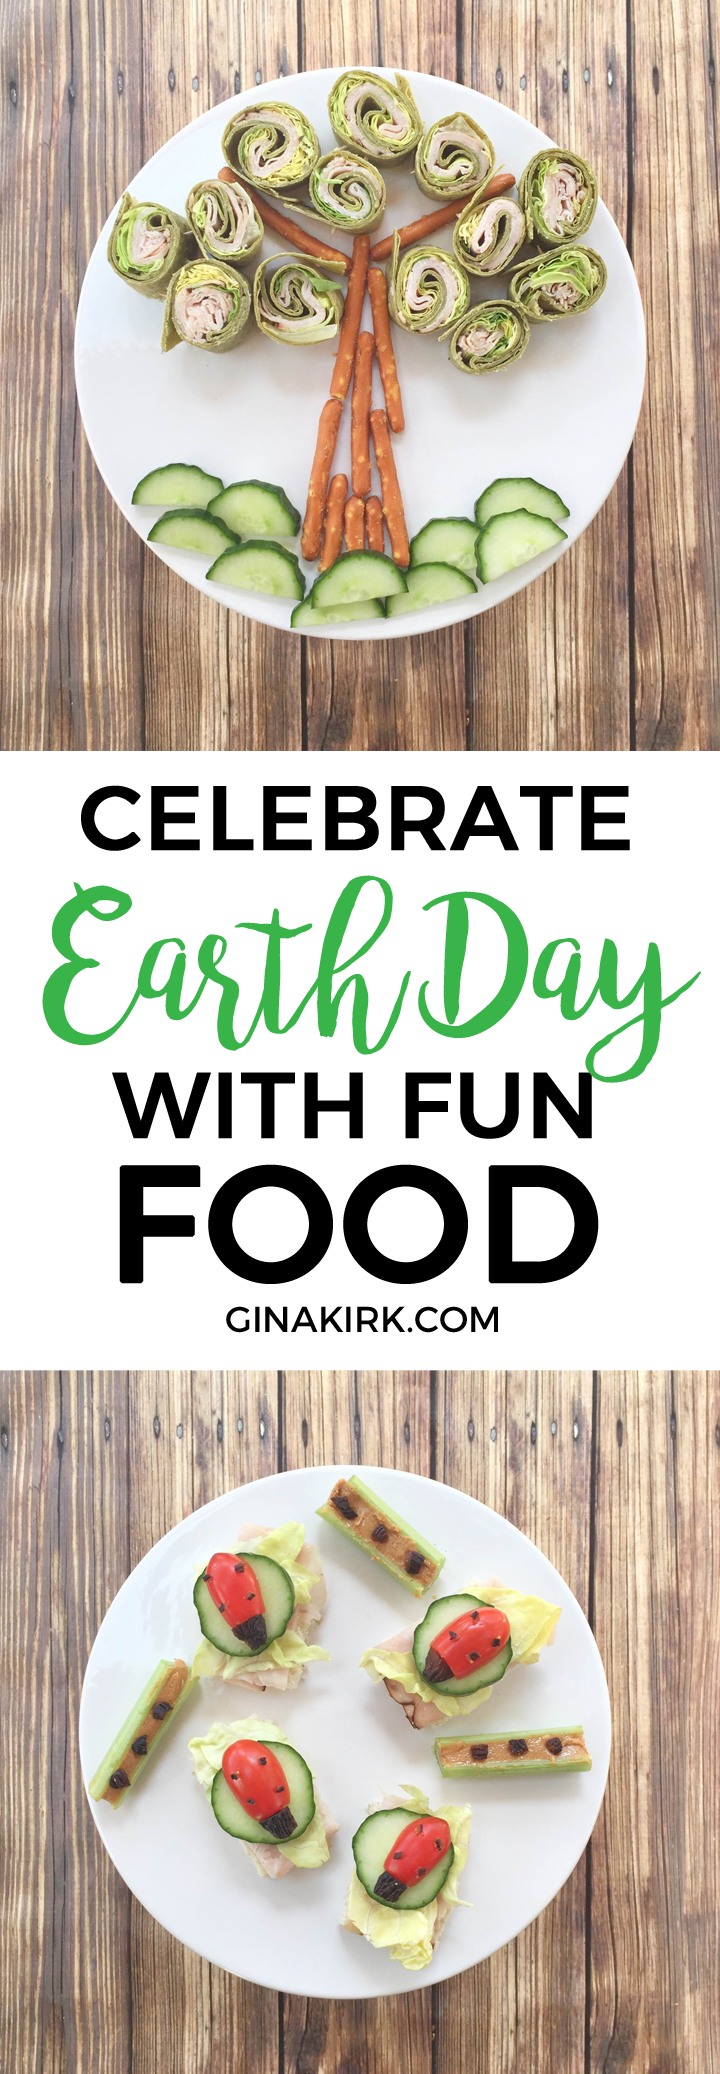 Celebrate Earth Day with fun food | Fun food ideas for kids | Spring food art fun | Earth Day celebration | GinaKirk.com